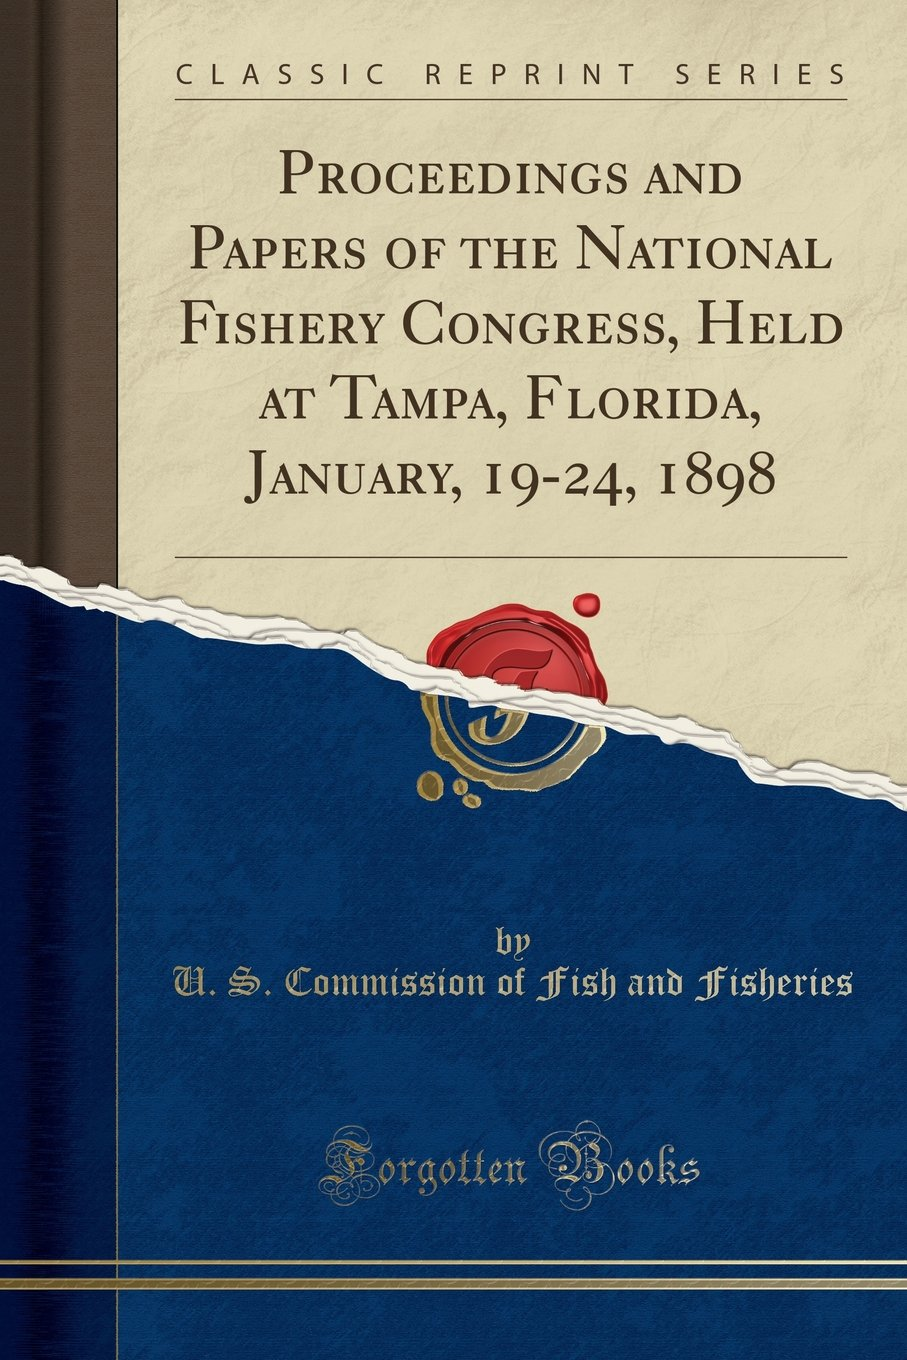 Proceedings and Papers of the National Fishery Congress, Held at Tampa, Florida, January, 19-24, 1898 (Classic Reprint) ebook